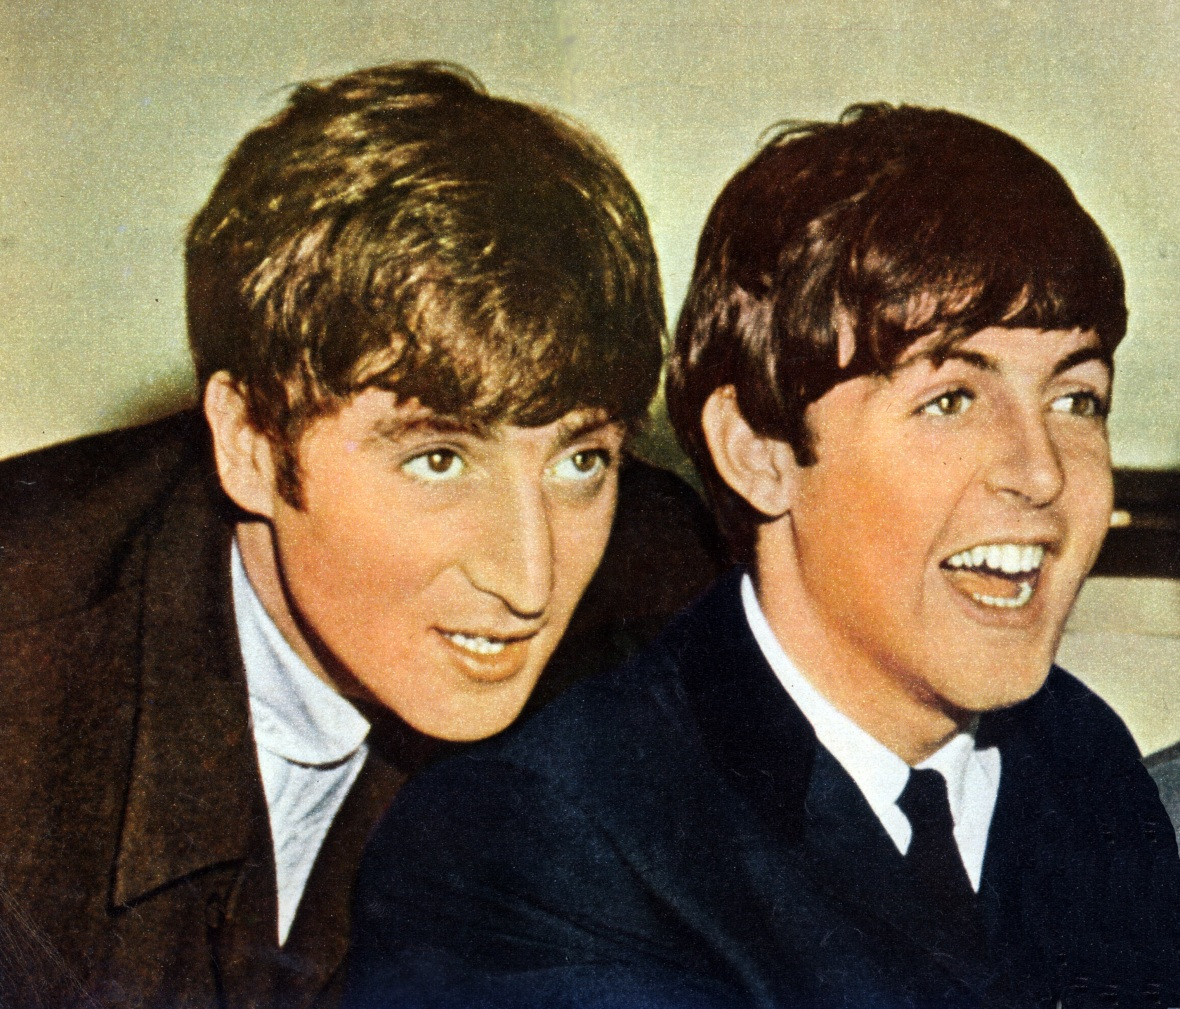 john lennon paul mccartney getty images